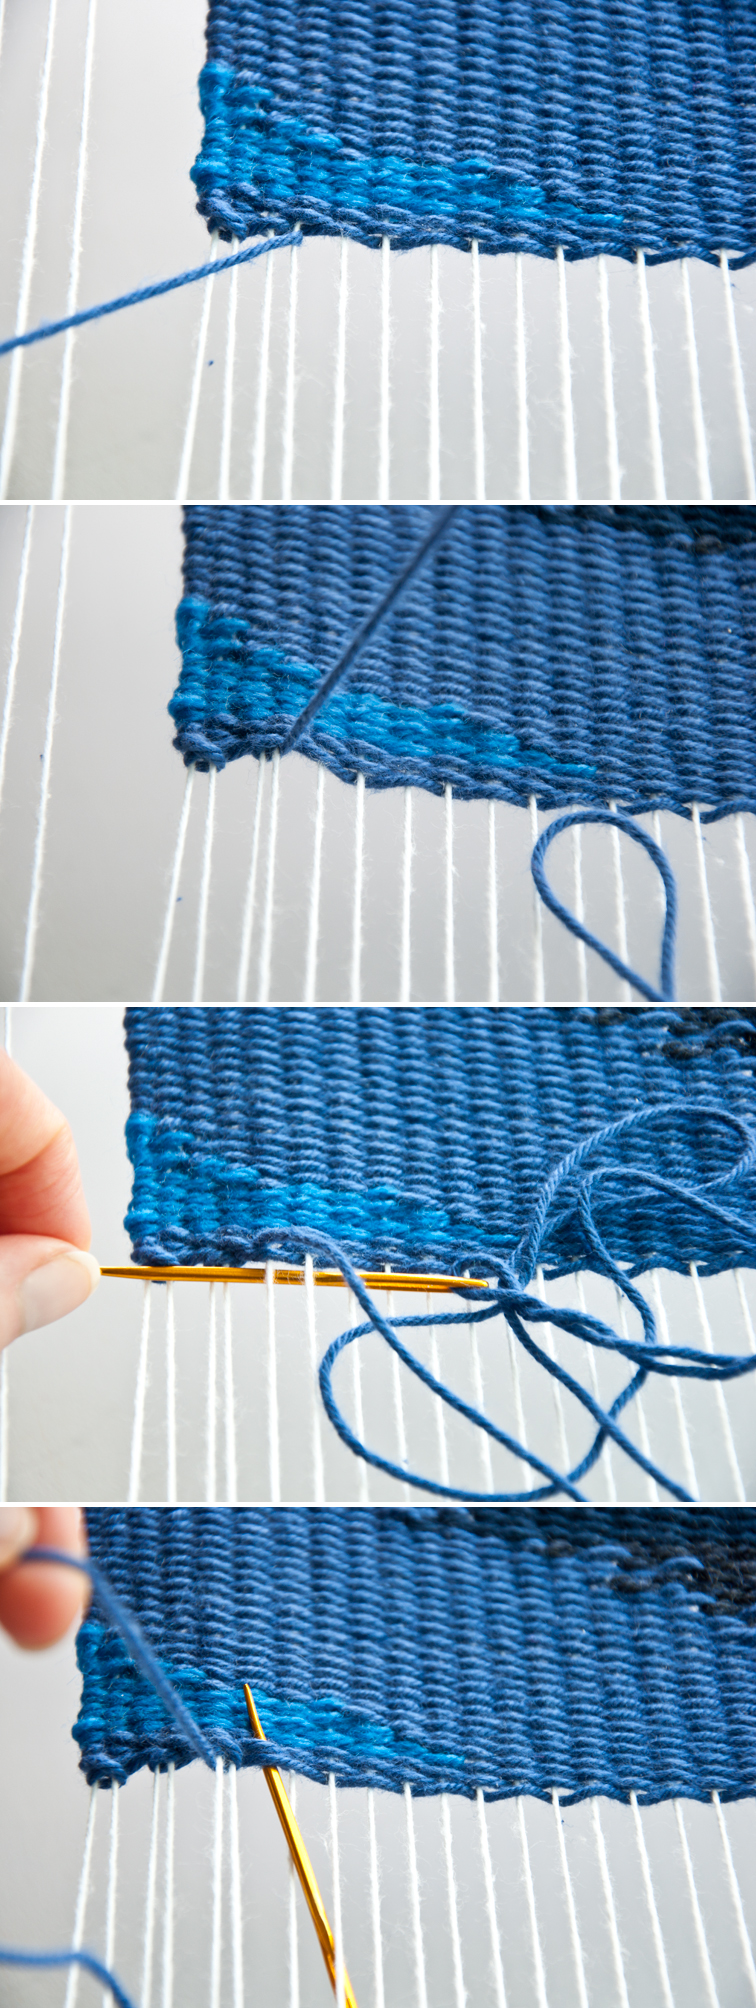 How to Hem Stitch a Weave